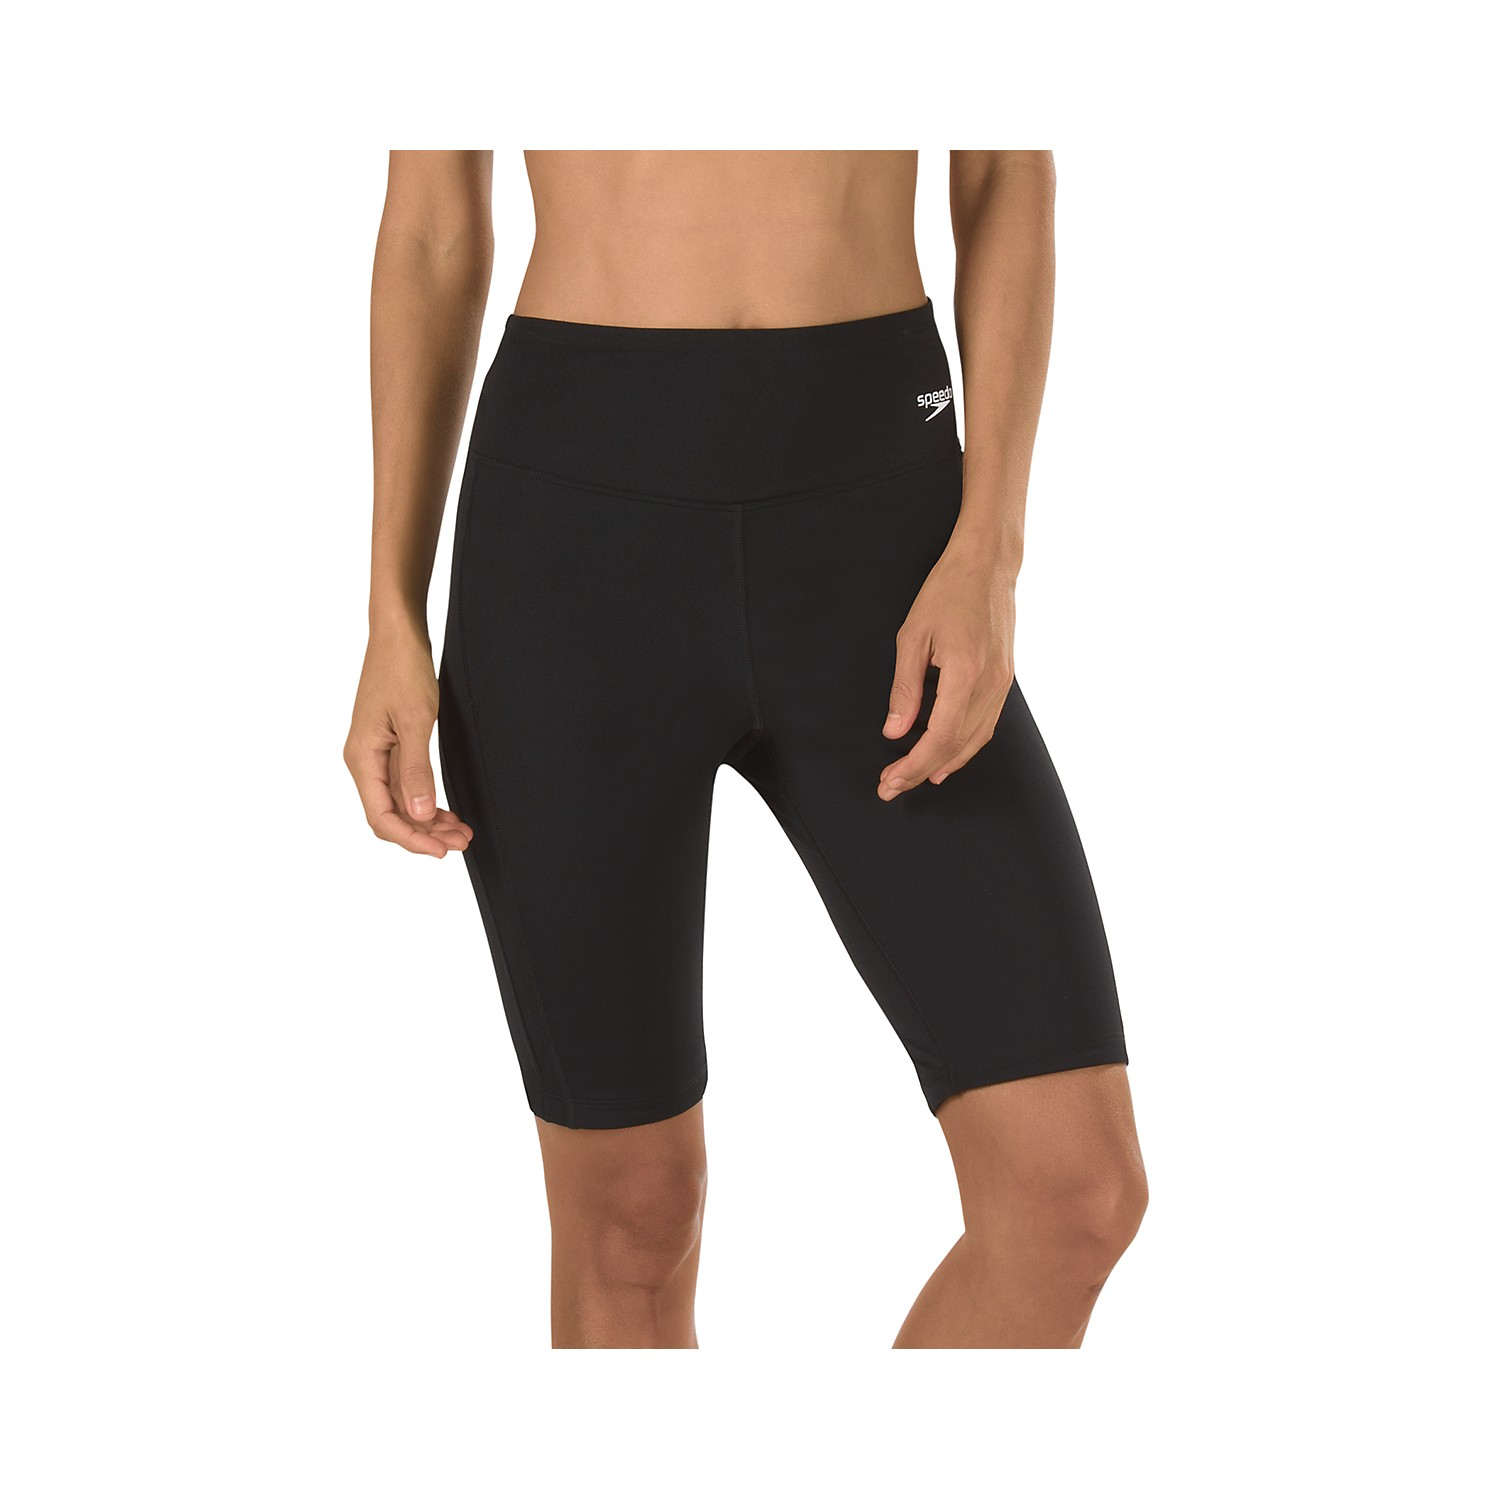 SPEEDO Endurance Plus Women's Jammer (Speedo Black (001))